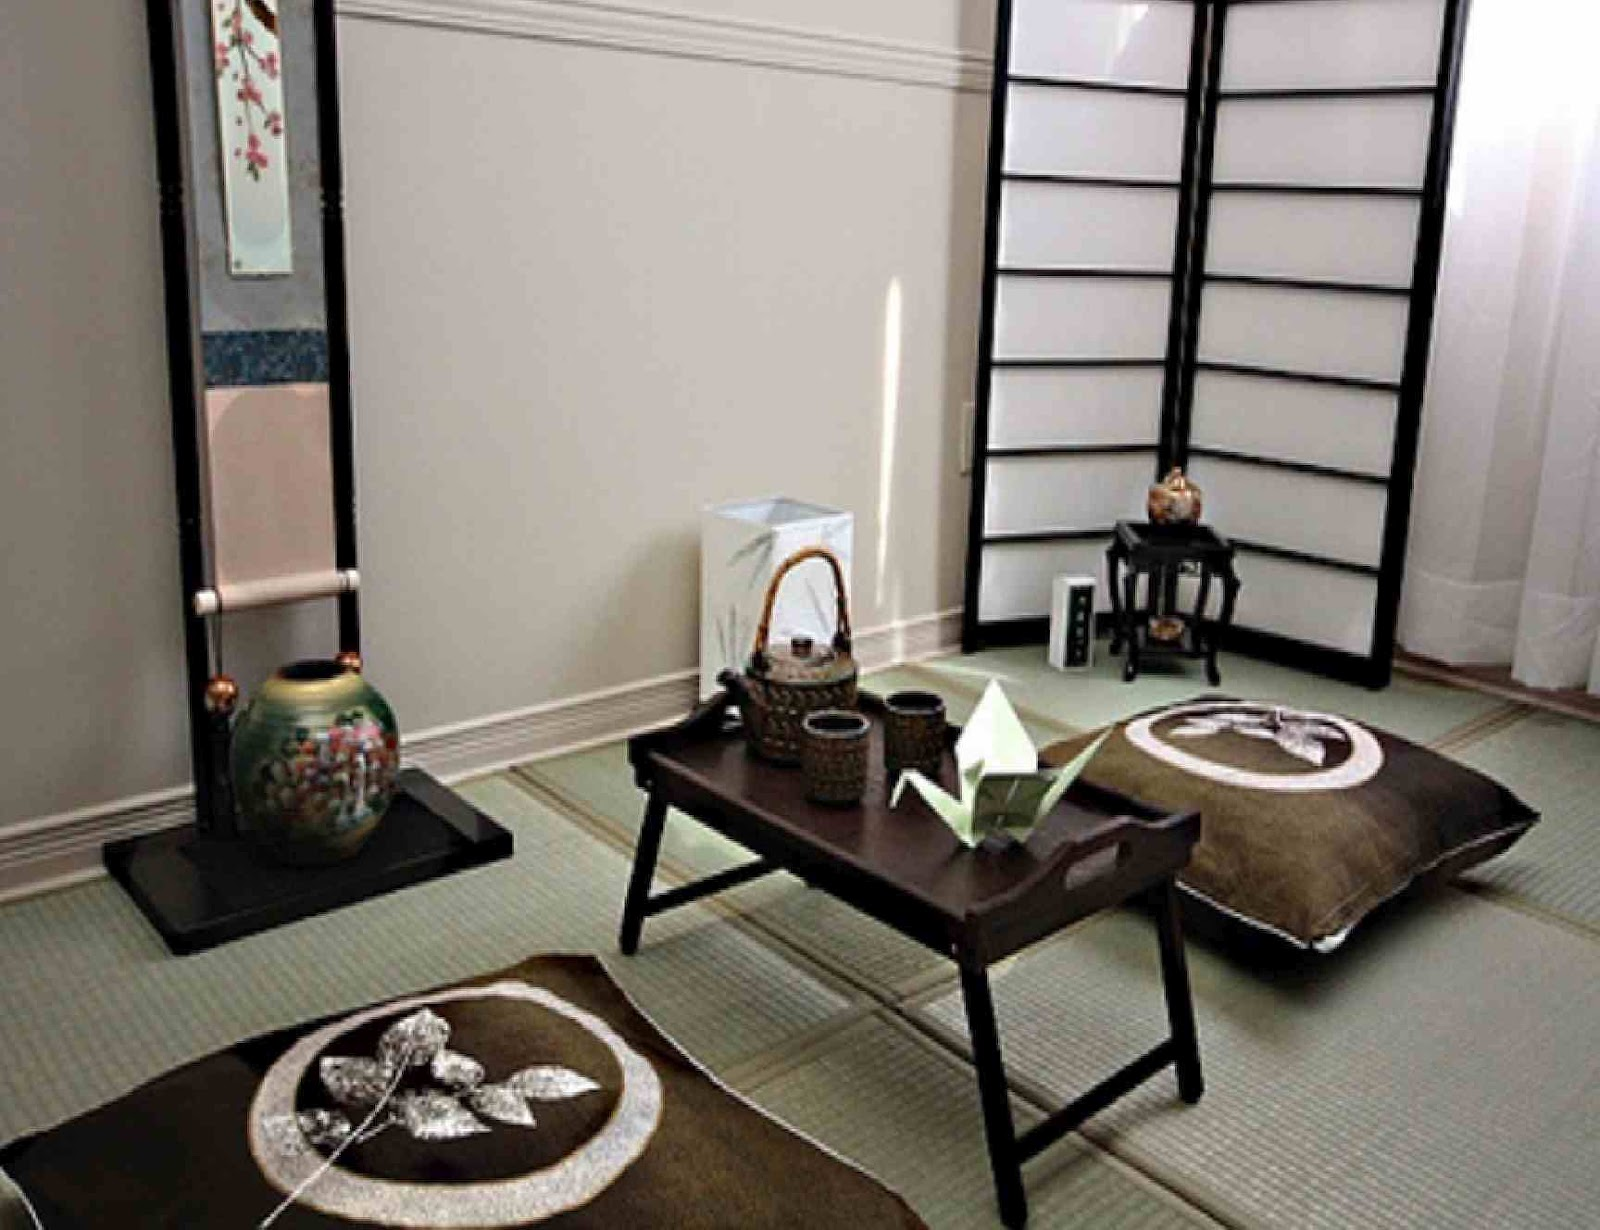 Japanese Inspired Home Decor Japanese Interior Design Interior Home Design